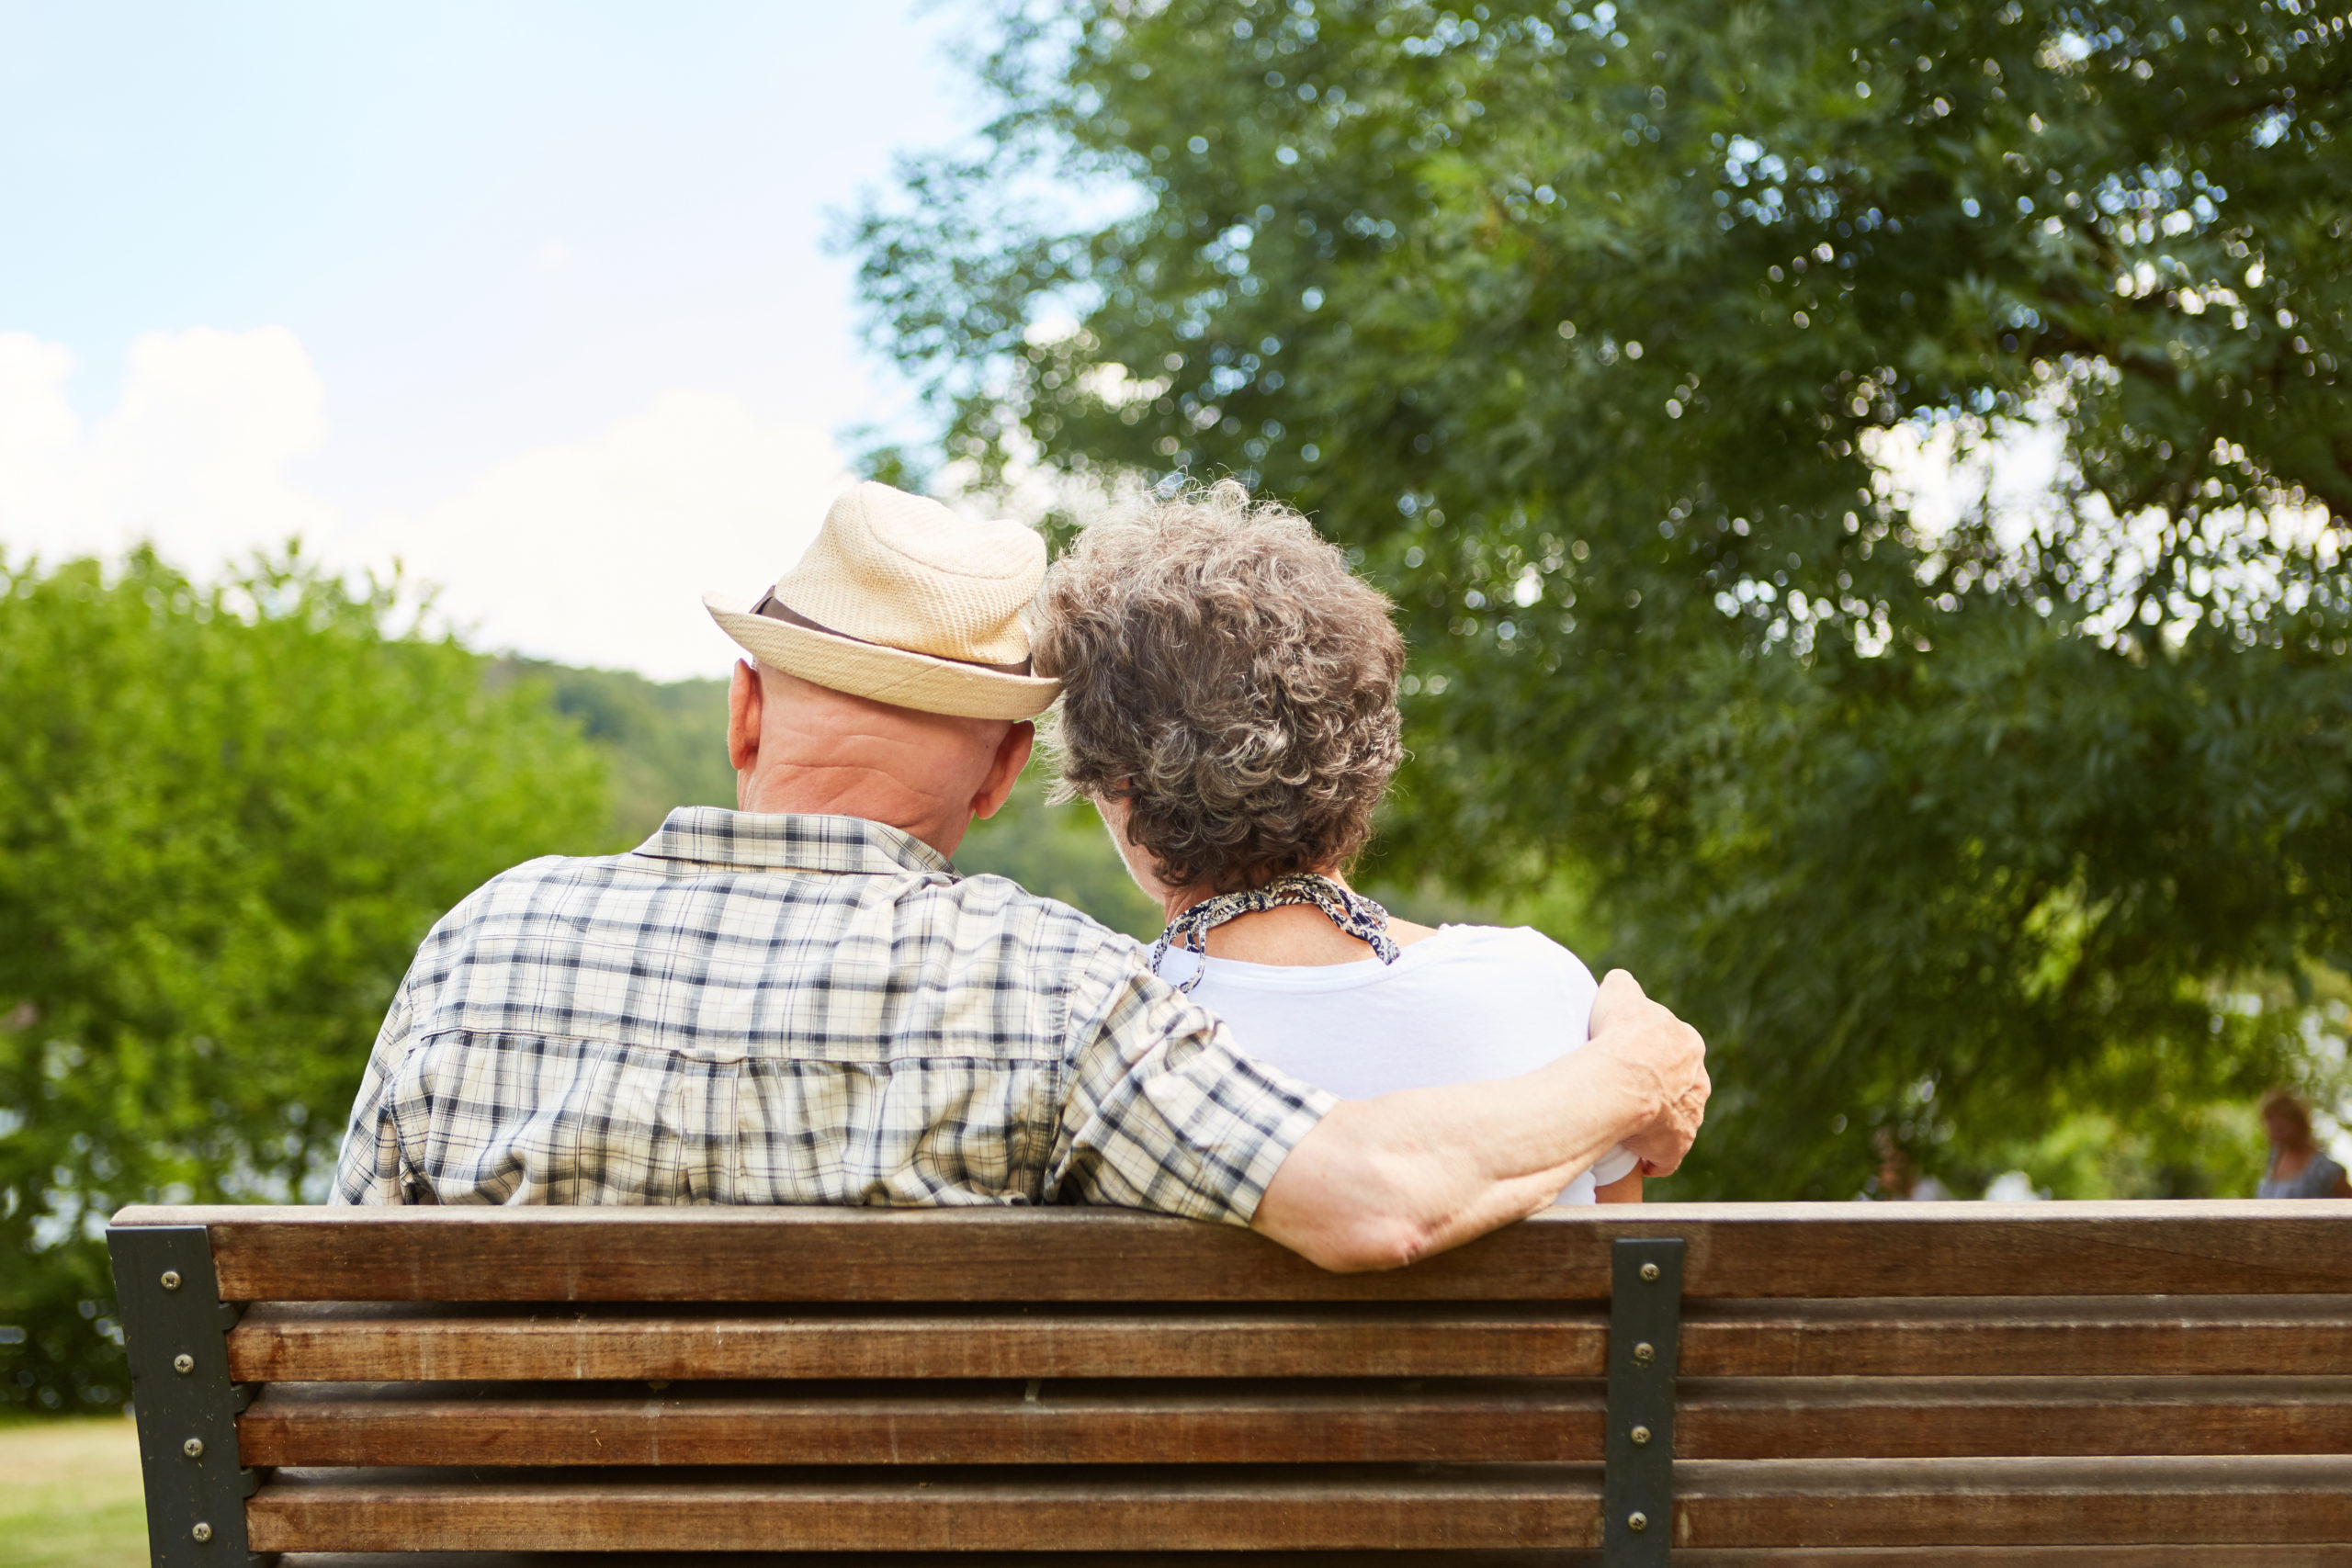 Senior couple sitting side by side on a park bench as a sign of harmony and love